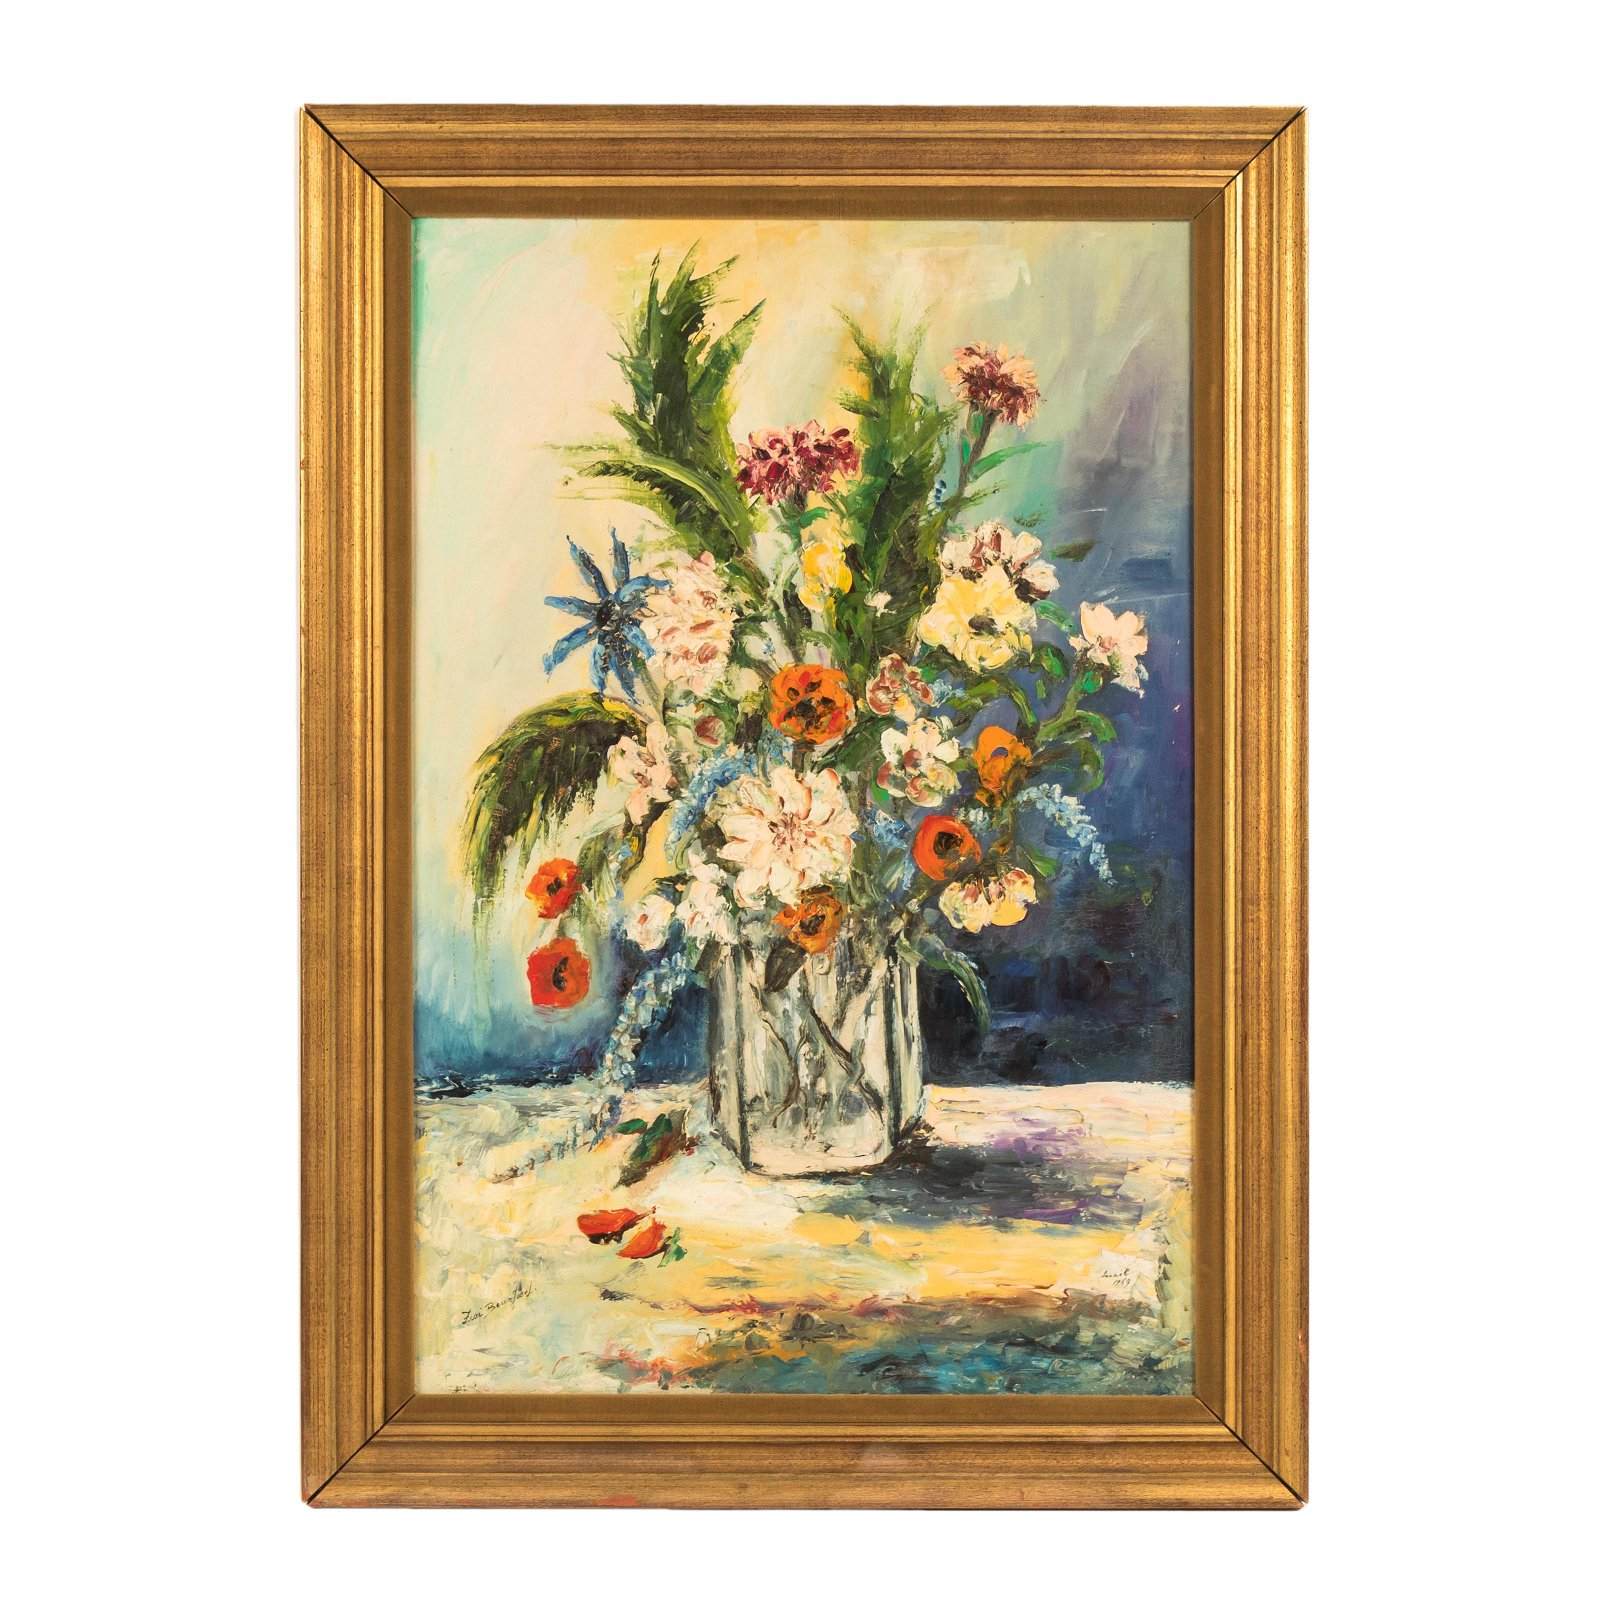 Mystery Signed 1969 Floral Still Life Oil Painting